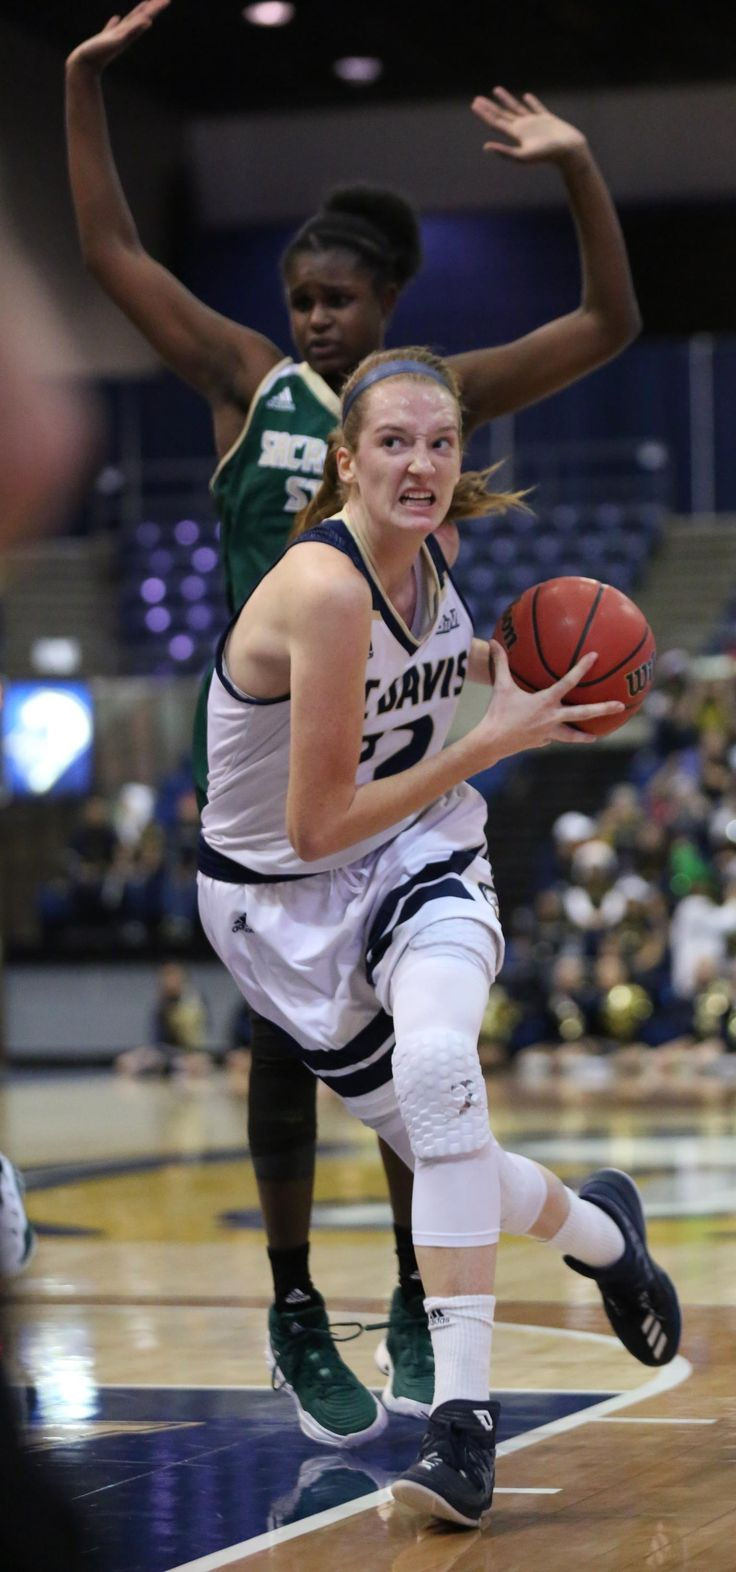 Sacramento State was not your typical 1-5 basketball team coming into Thursday's non-league game against the undefeated UC Davis women at The Pavilion. The Hornets had lost at Kentucky, at No. 11 West Virginia, at 5-2 Arizona State, at 5-3 Morehead State and in Reno to Nevada. The...  http://www.davisenterprise.com/sports/no-8-aggie-women-finally-swat-pesky-hornets-79-72/  #davisenterprise #Sports #B1, #PRINTED